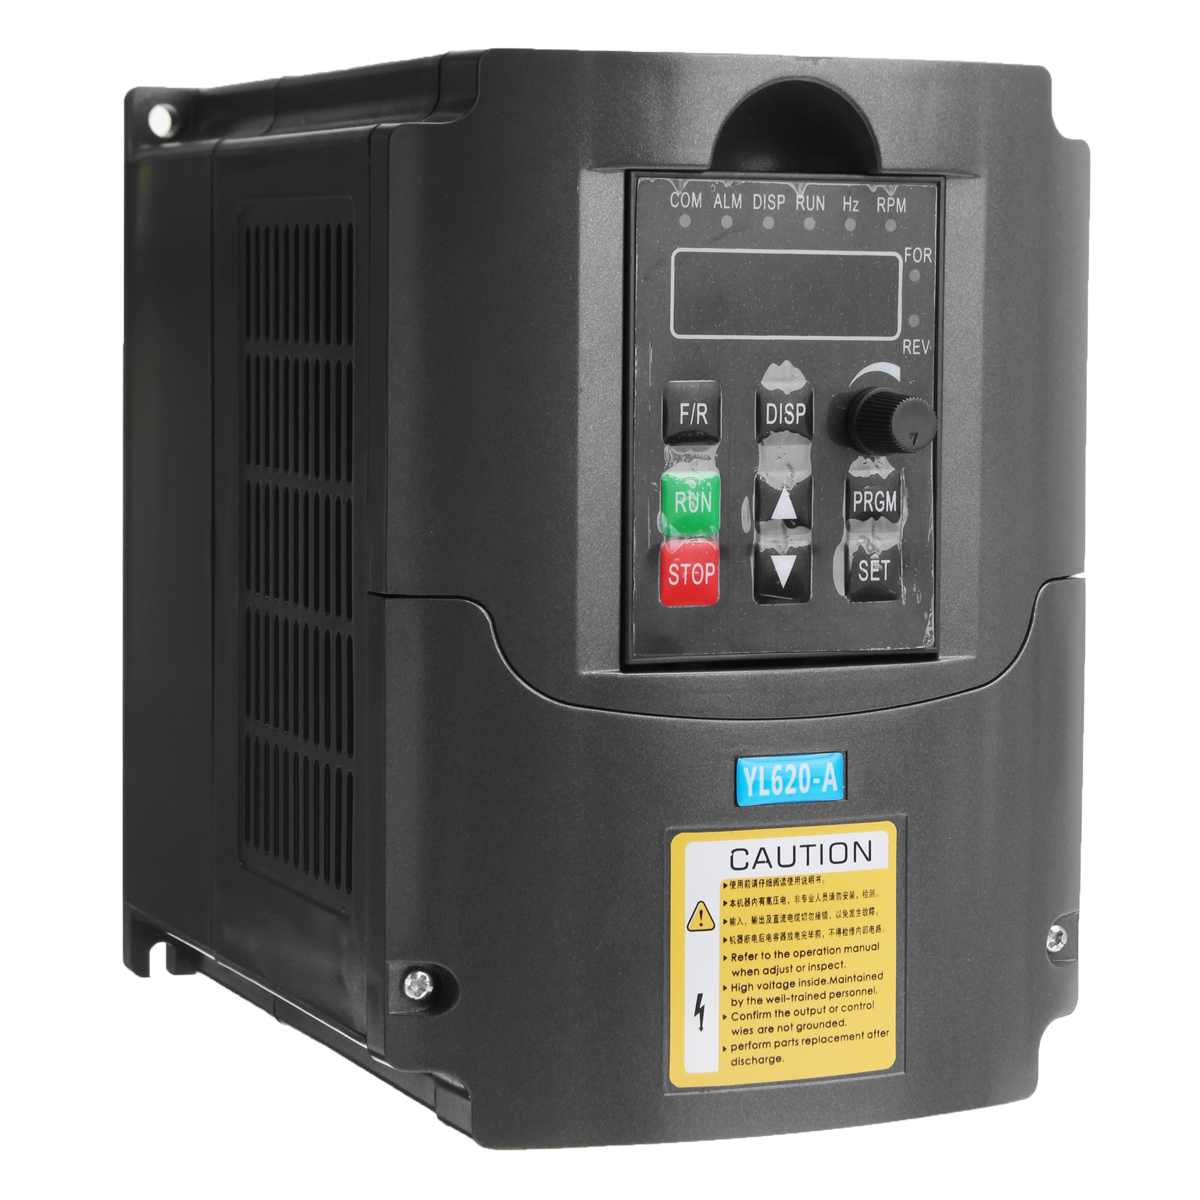 AC Variable Frequency Inverter 0.75kw 220V Converter 3 Phase Output 50-60Hz Single Phase Input Space Voltage Vector Modulation